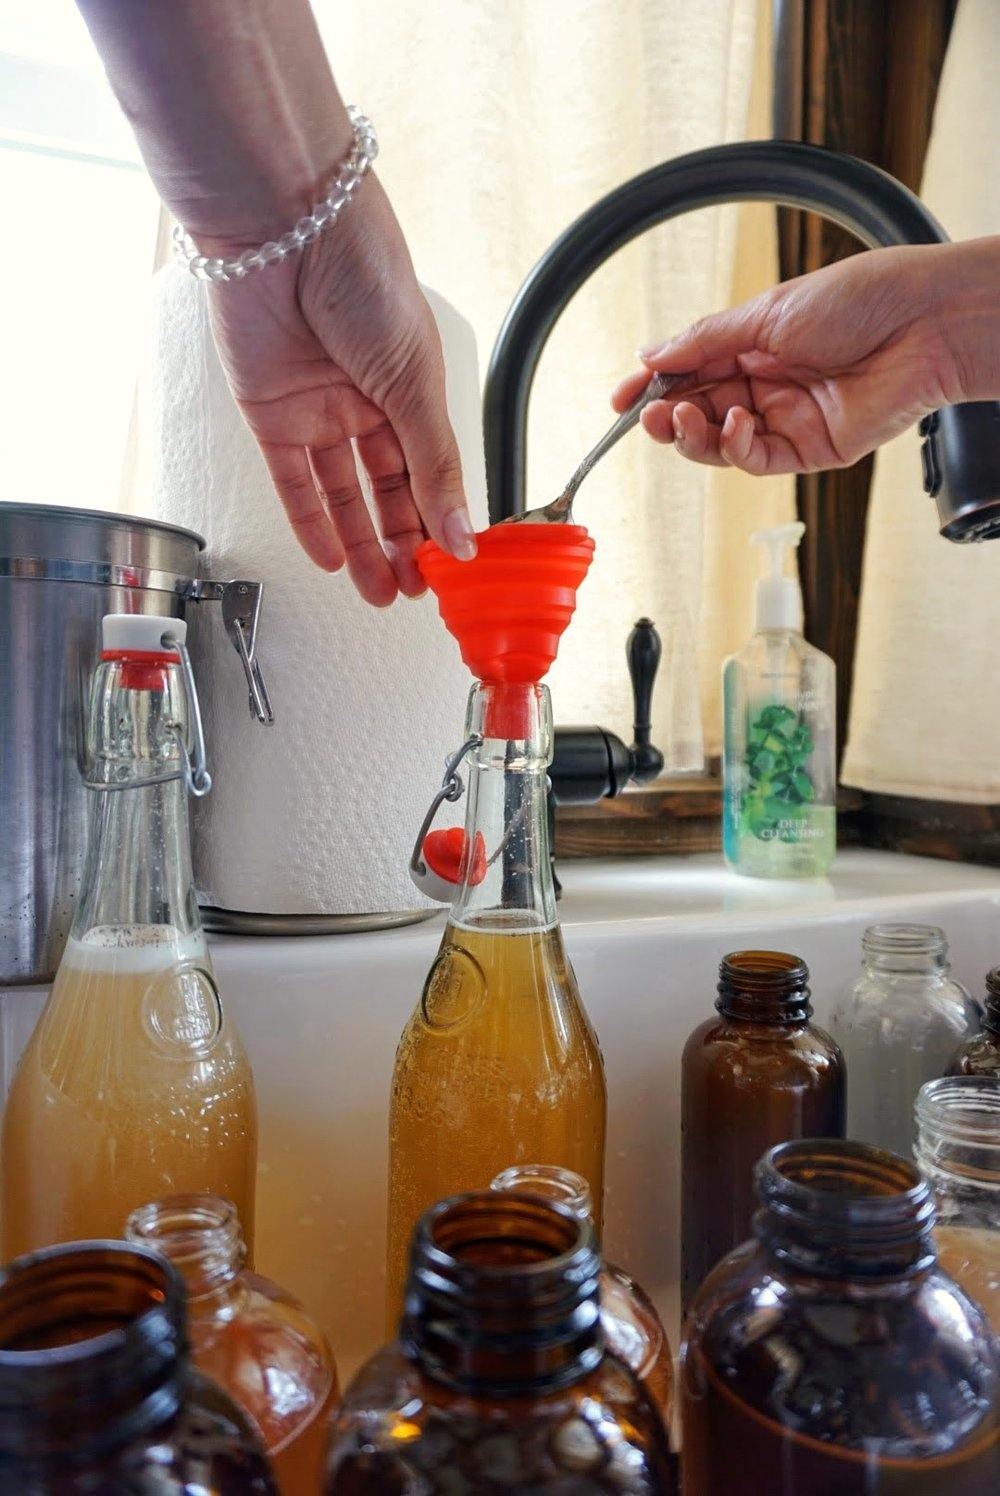 Tiny Home Kombucha Brewing Scoby bottling homemade organic flavors fruit original